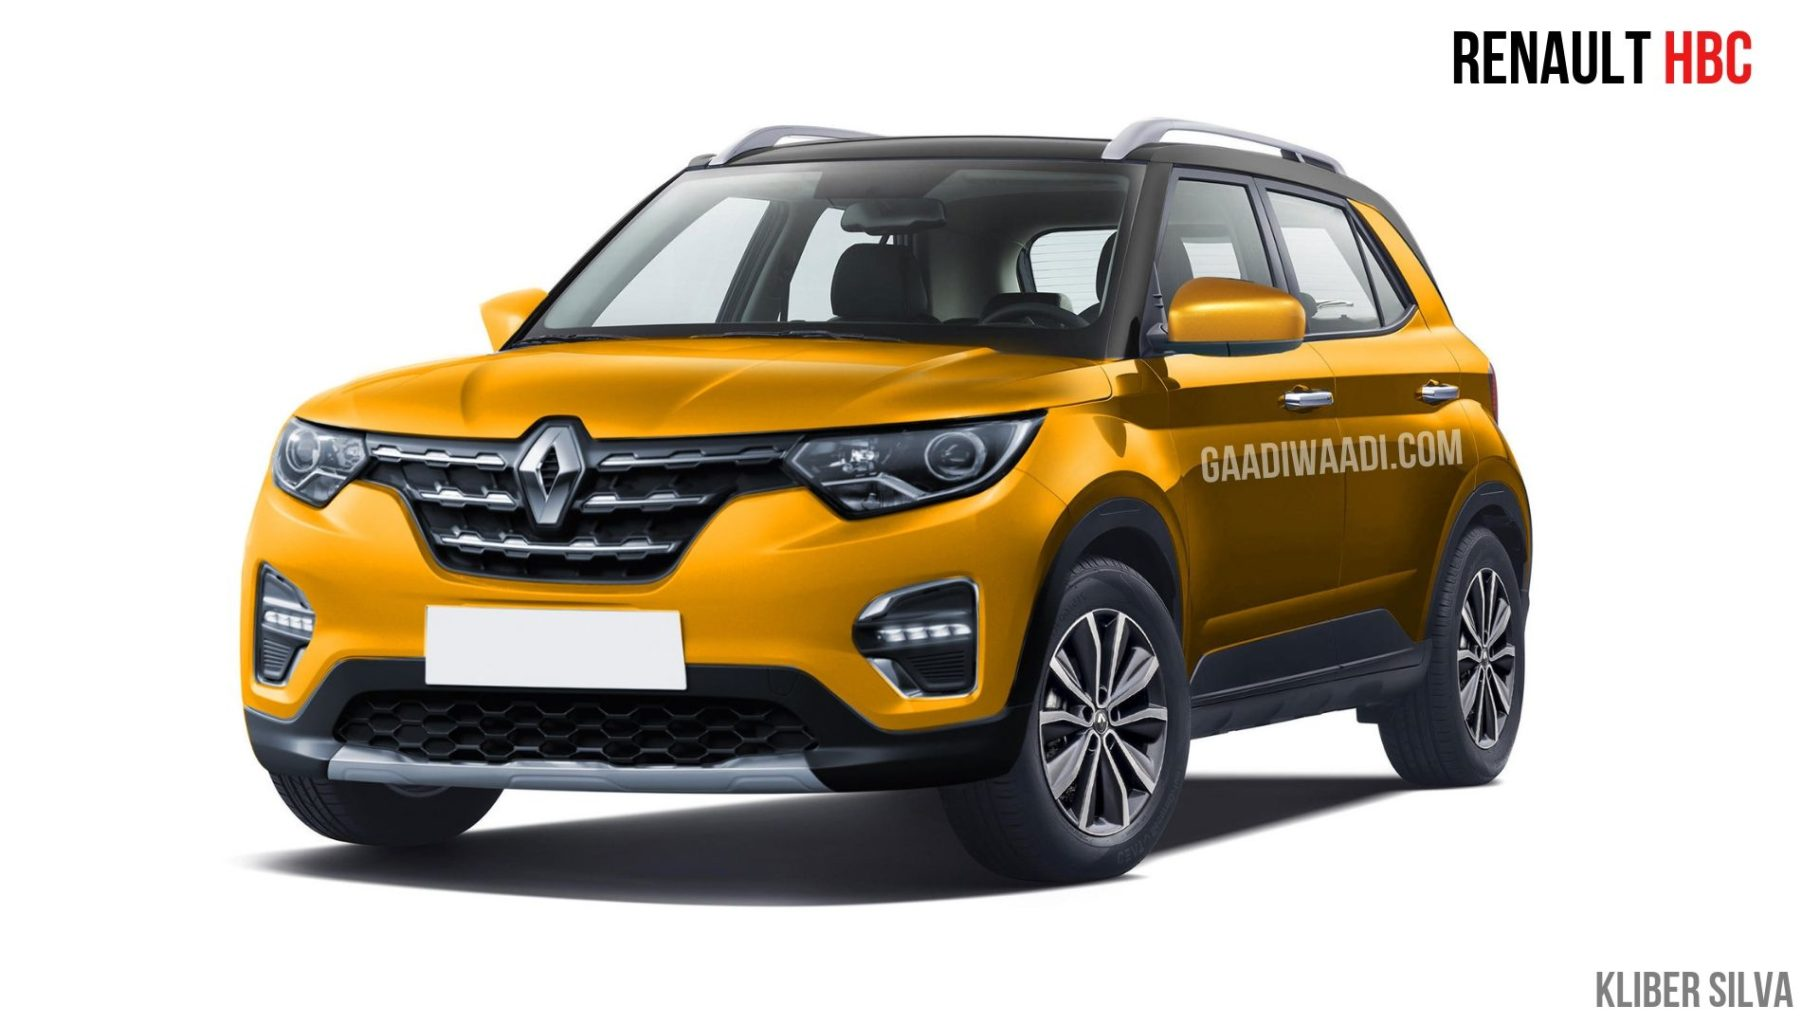 Renault HBC (Kwid/Triber Based SUV) Rendered; Launch Next Year